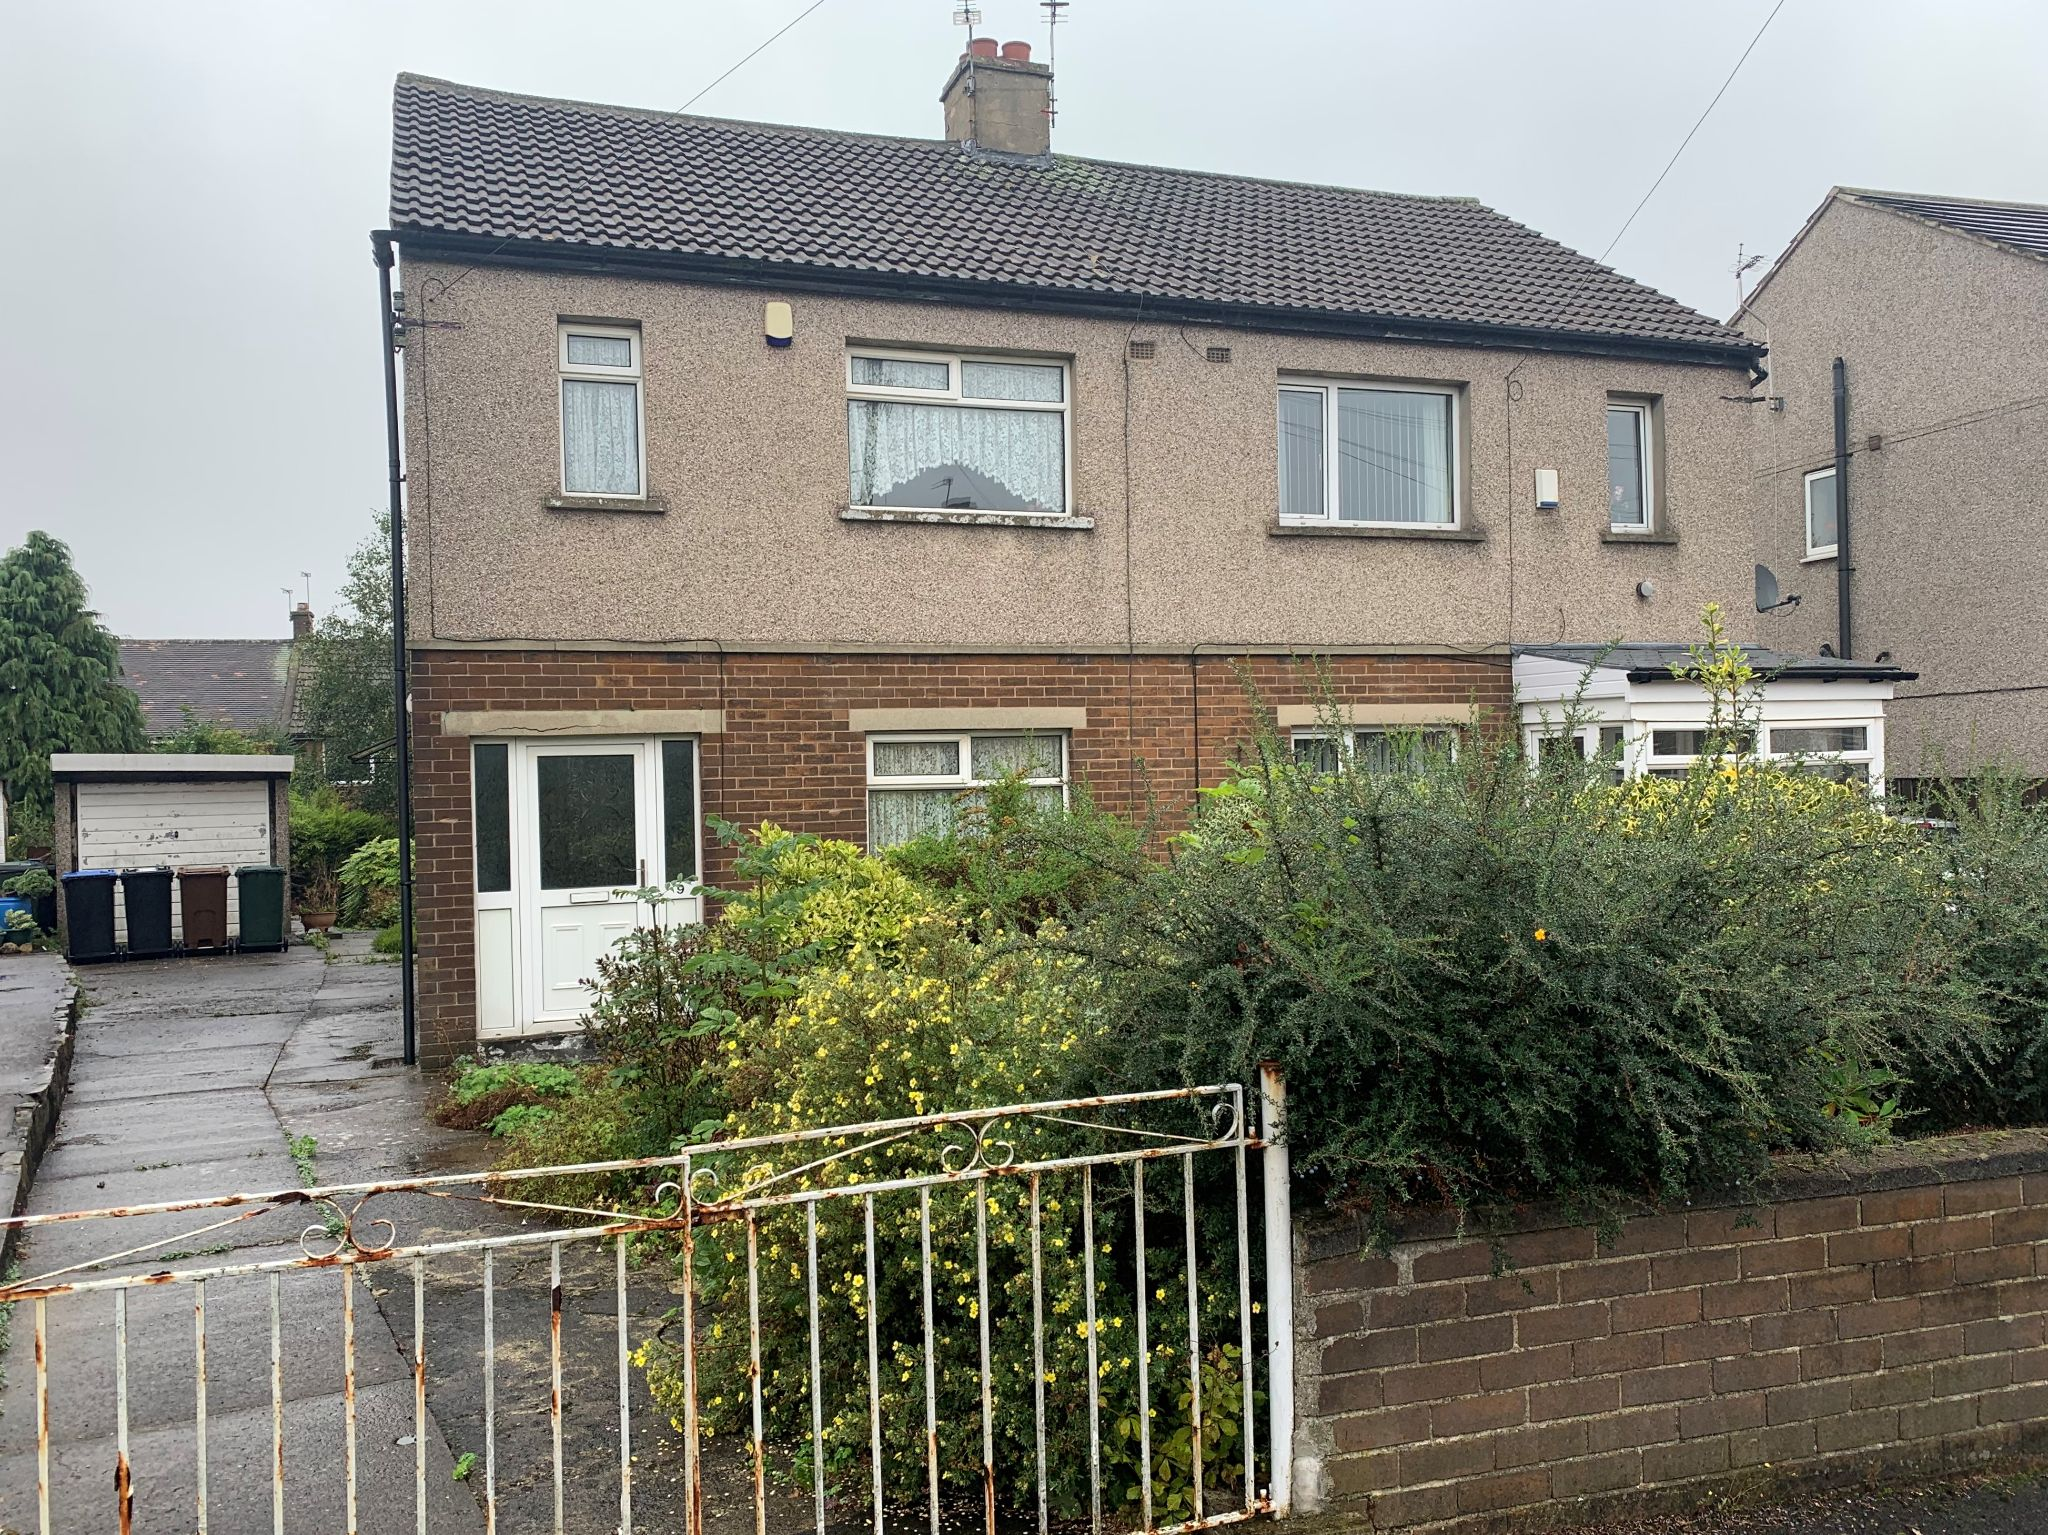 3 bedroom semi-detached house SSTC in Bradford - Photograph 1.